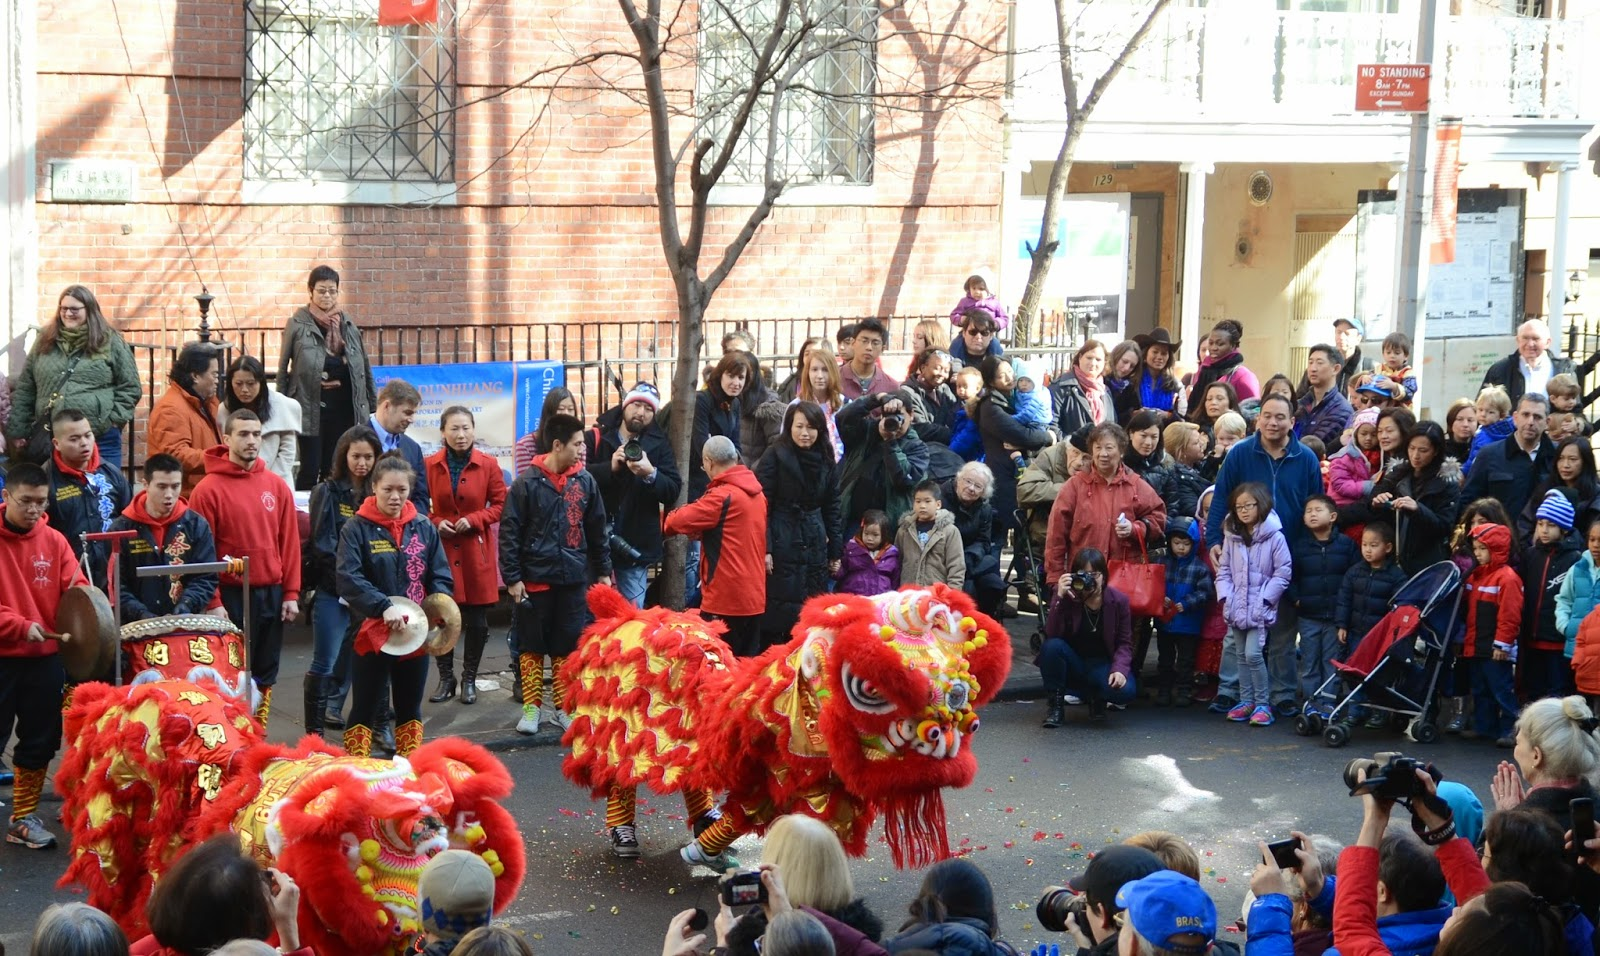 Celebrating Chinese New Year With Kids Make Your Own Dumplings And Enter To Win A Special Childrens Forbidden City Book